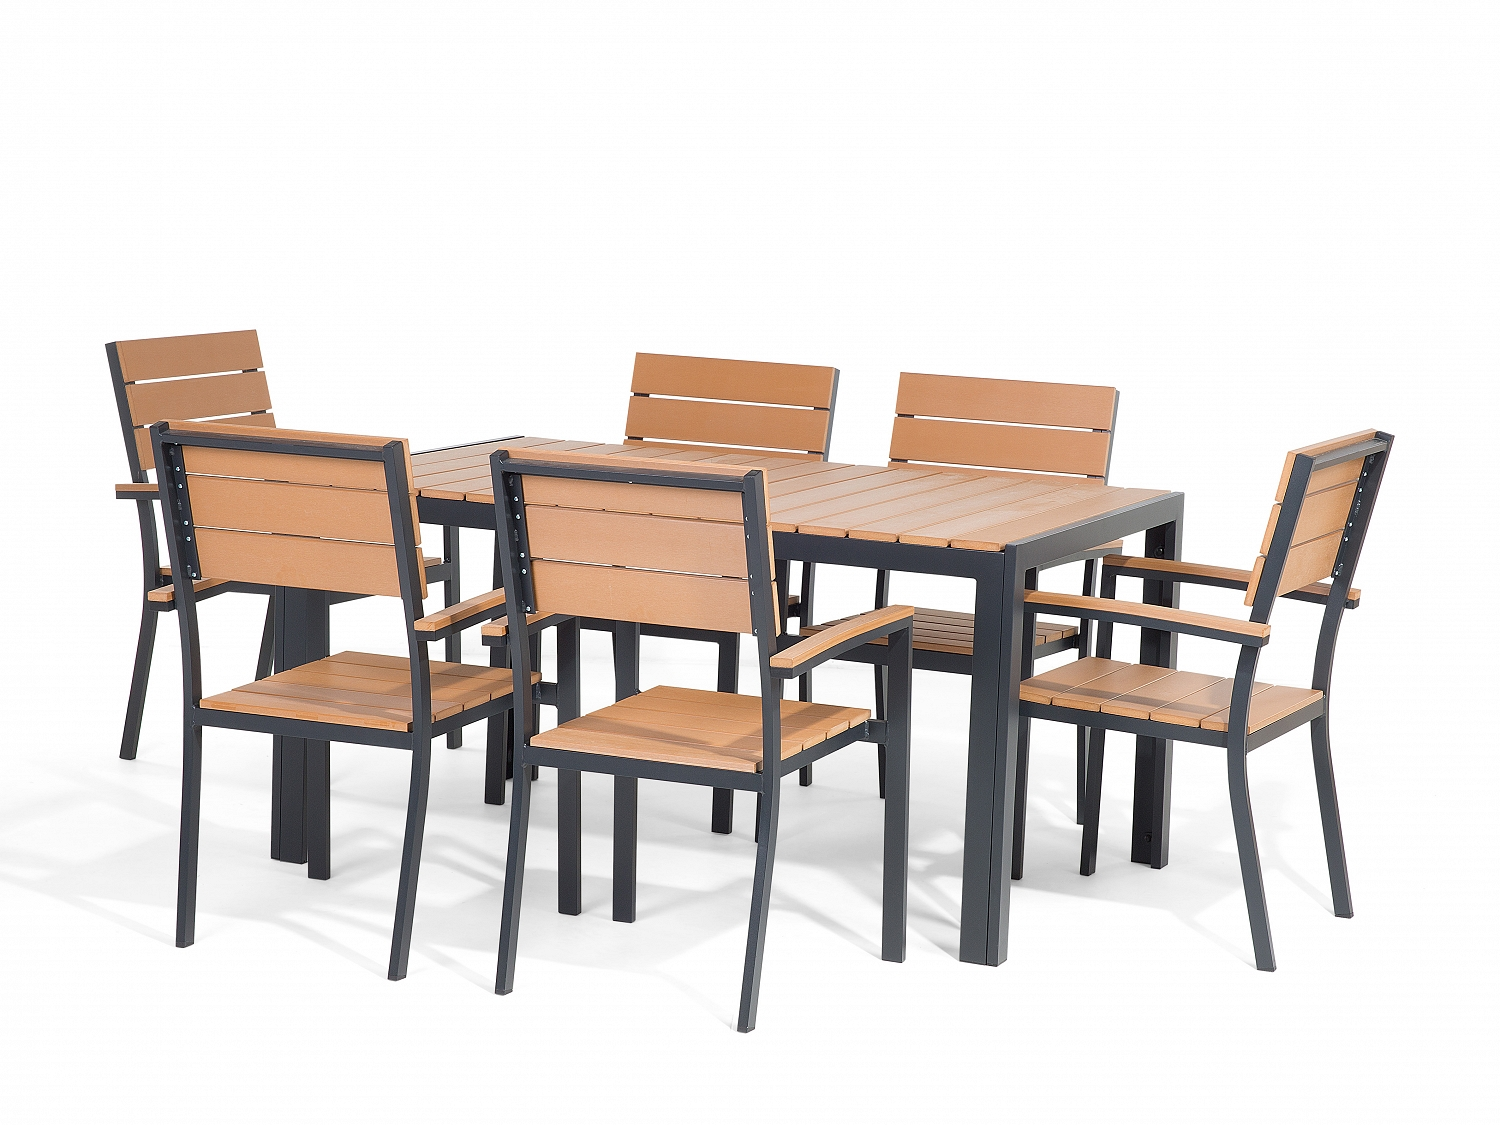 Patio Chairs Set Of 6: Patio Furniture Set Garden Table And Chairs Polywood 6- Piece